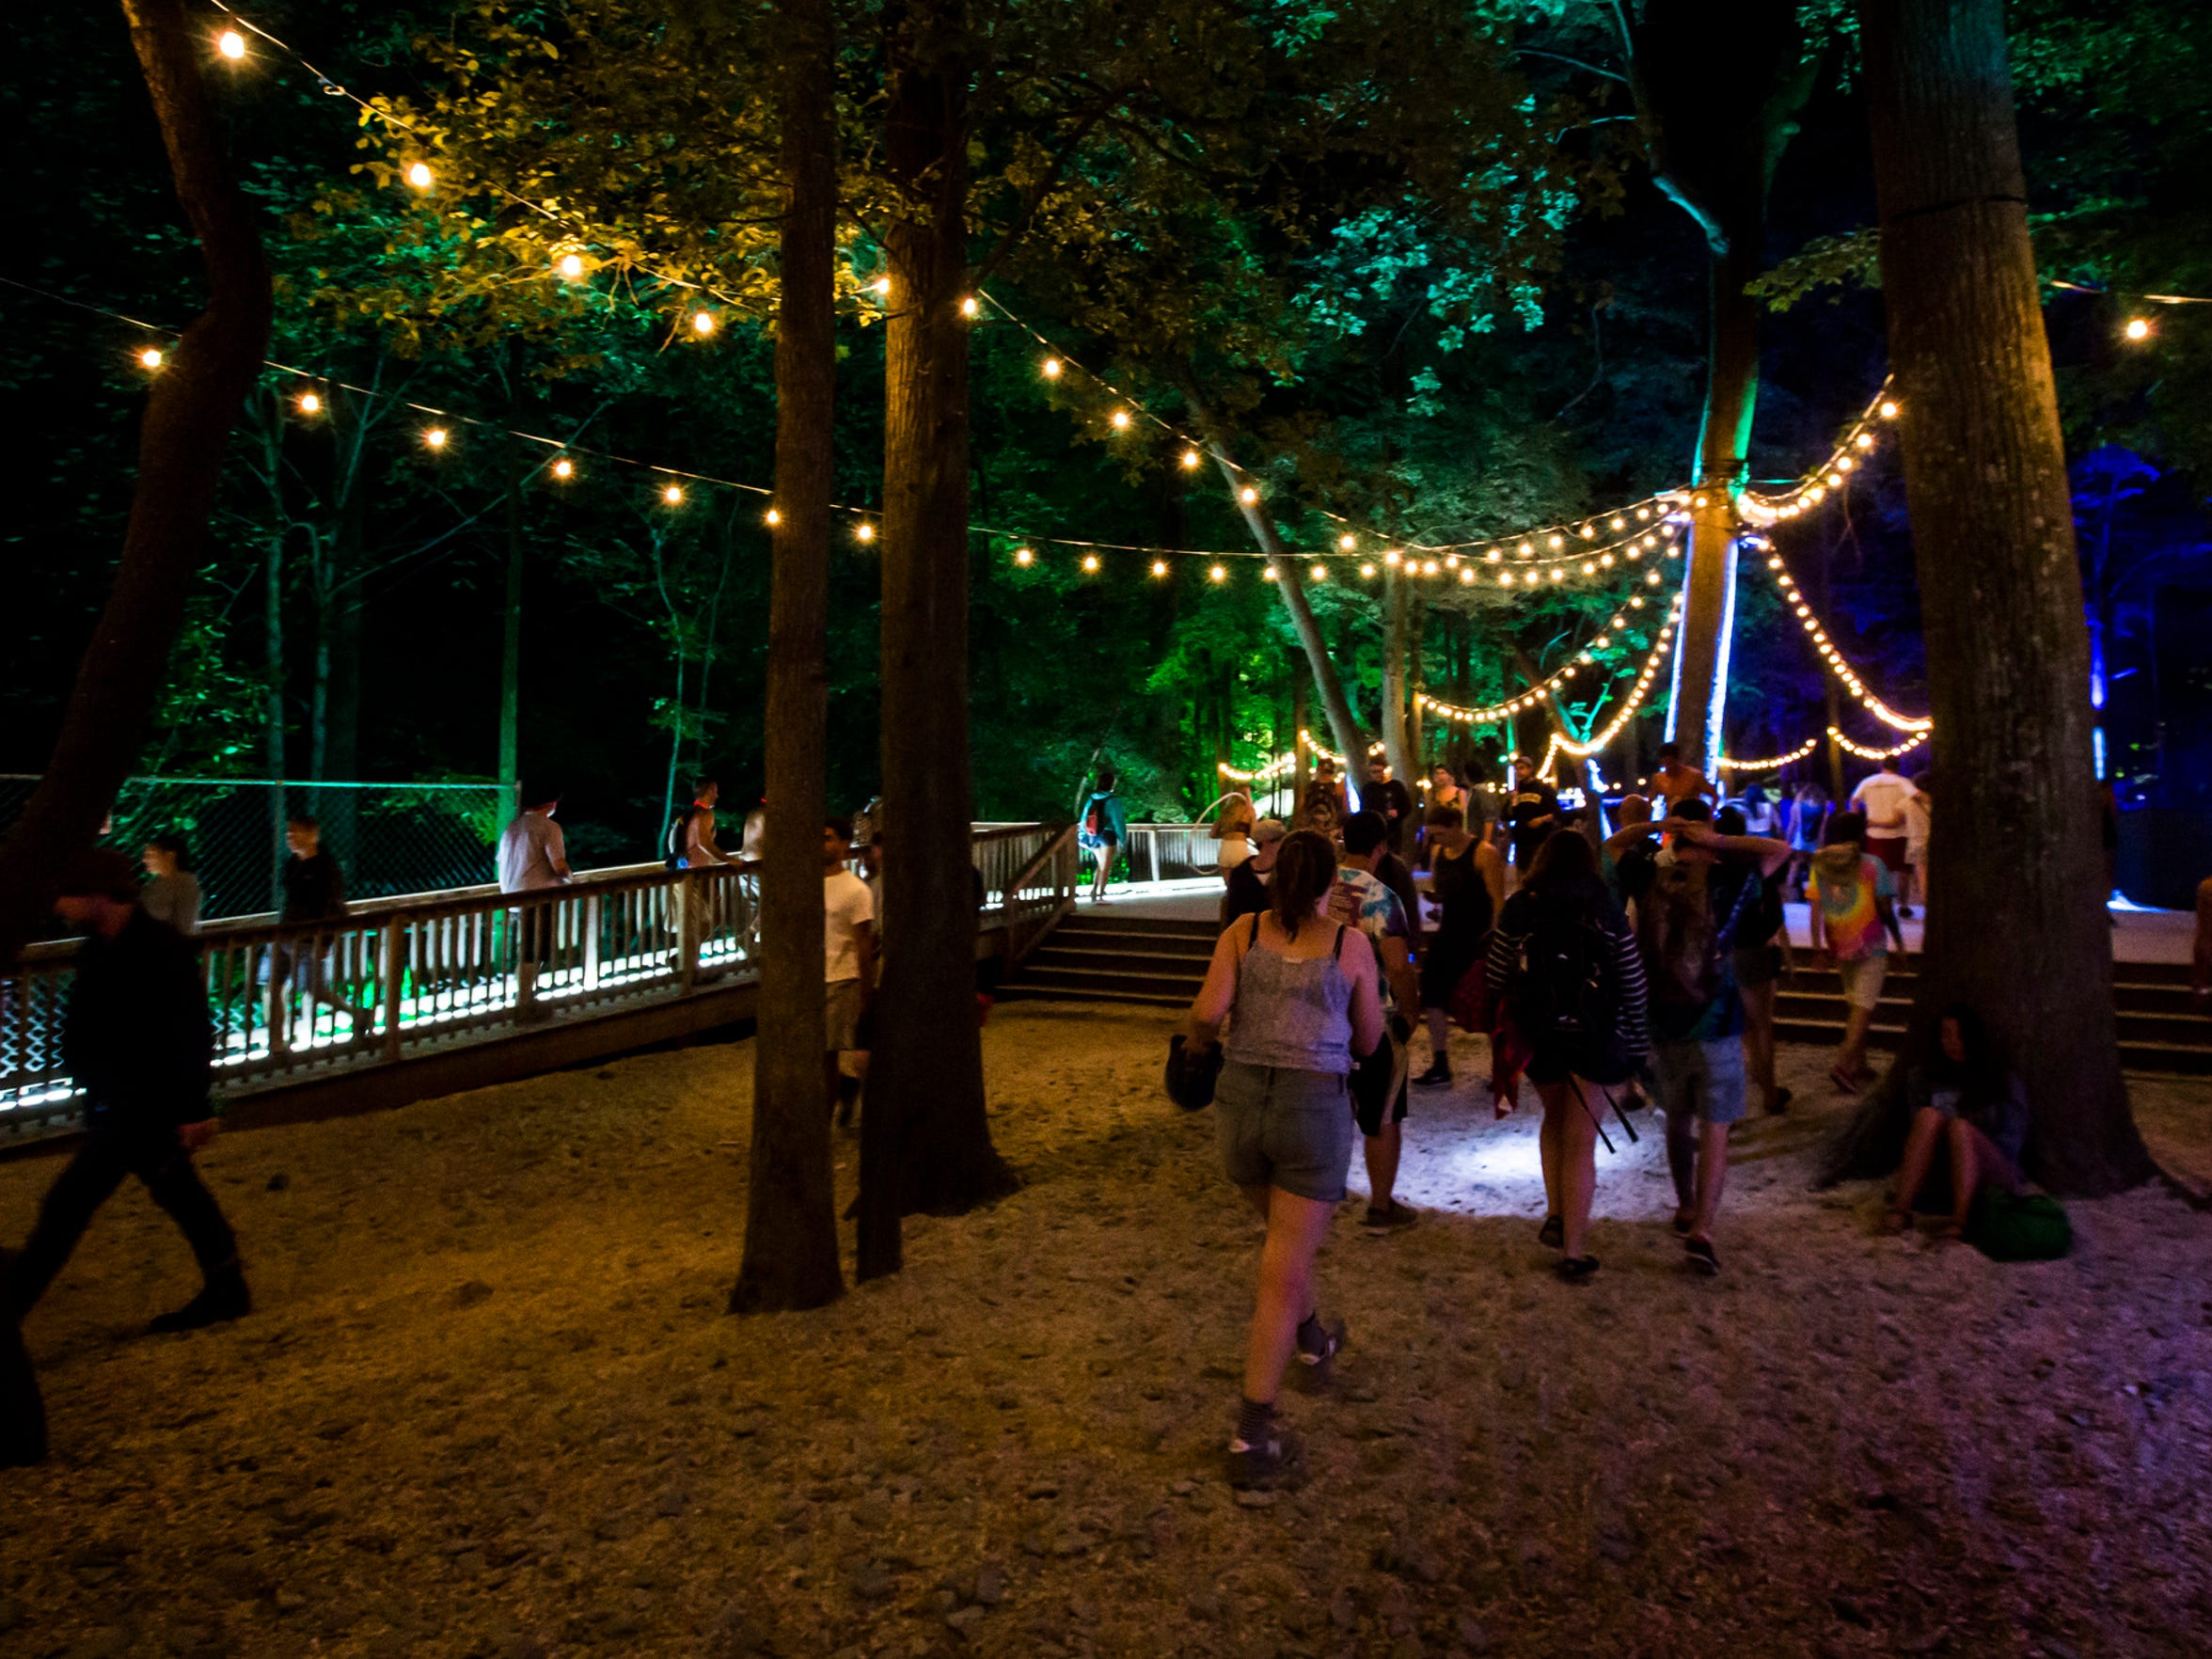 Firefly attendees make their way through The Pathway